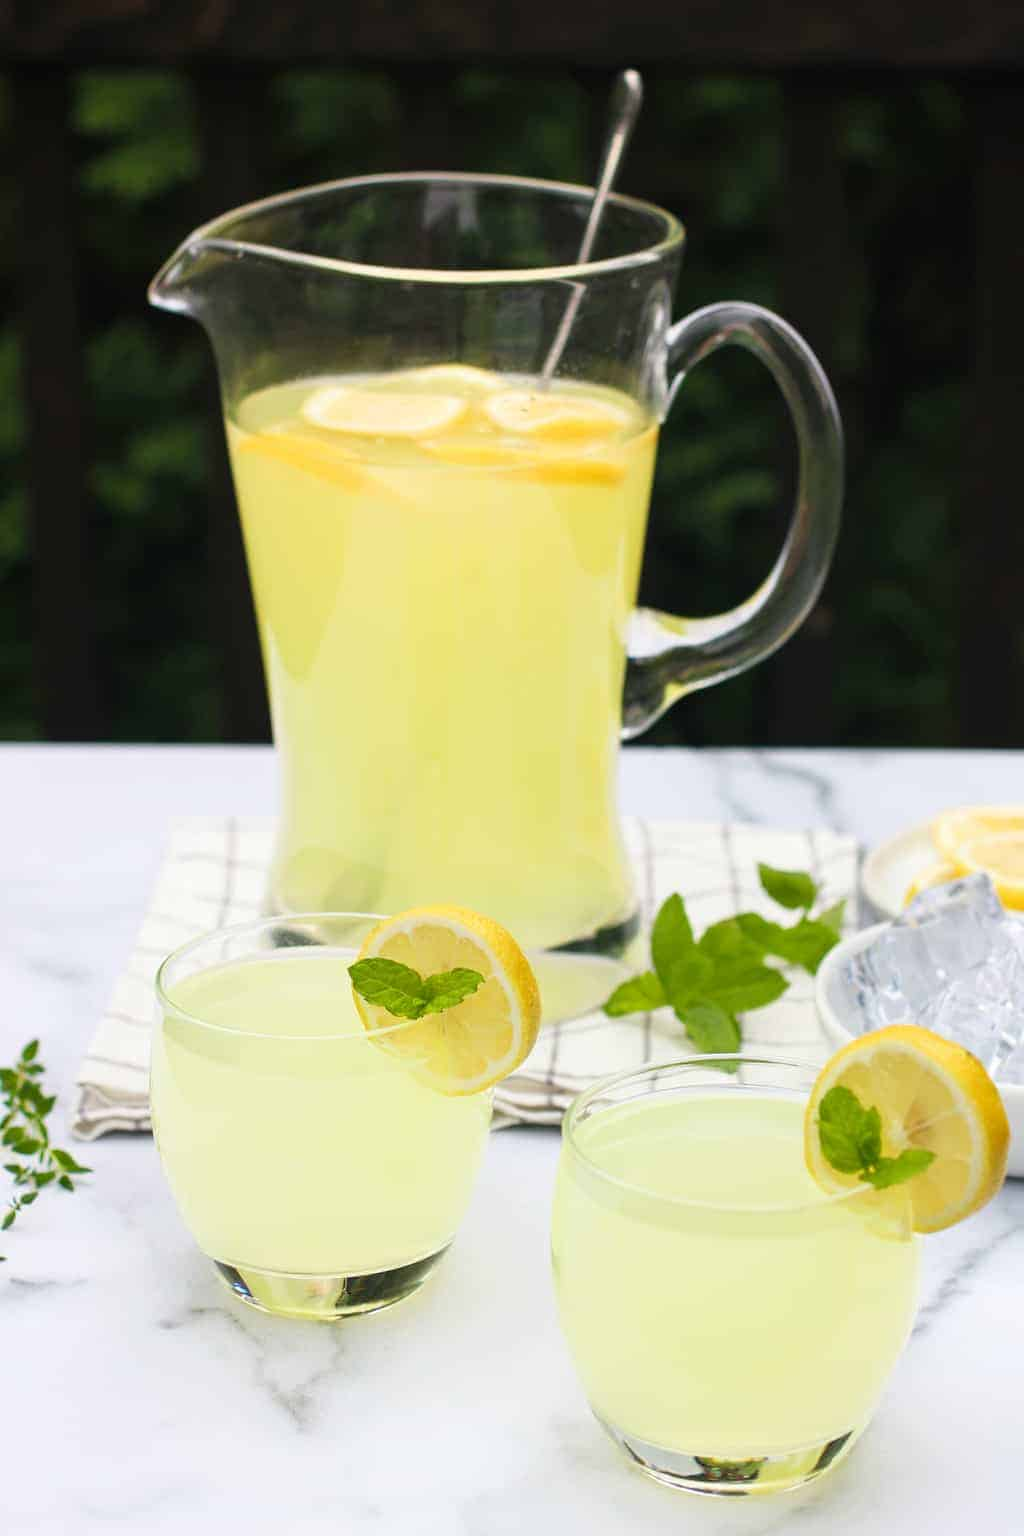 2 glasses and a large pitcher of lemonade